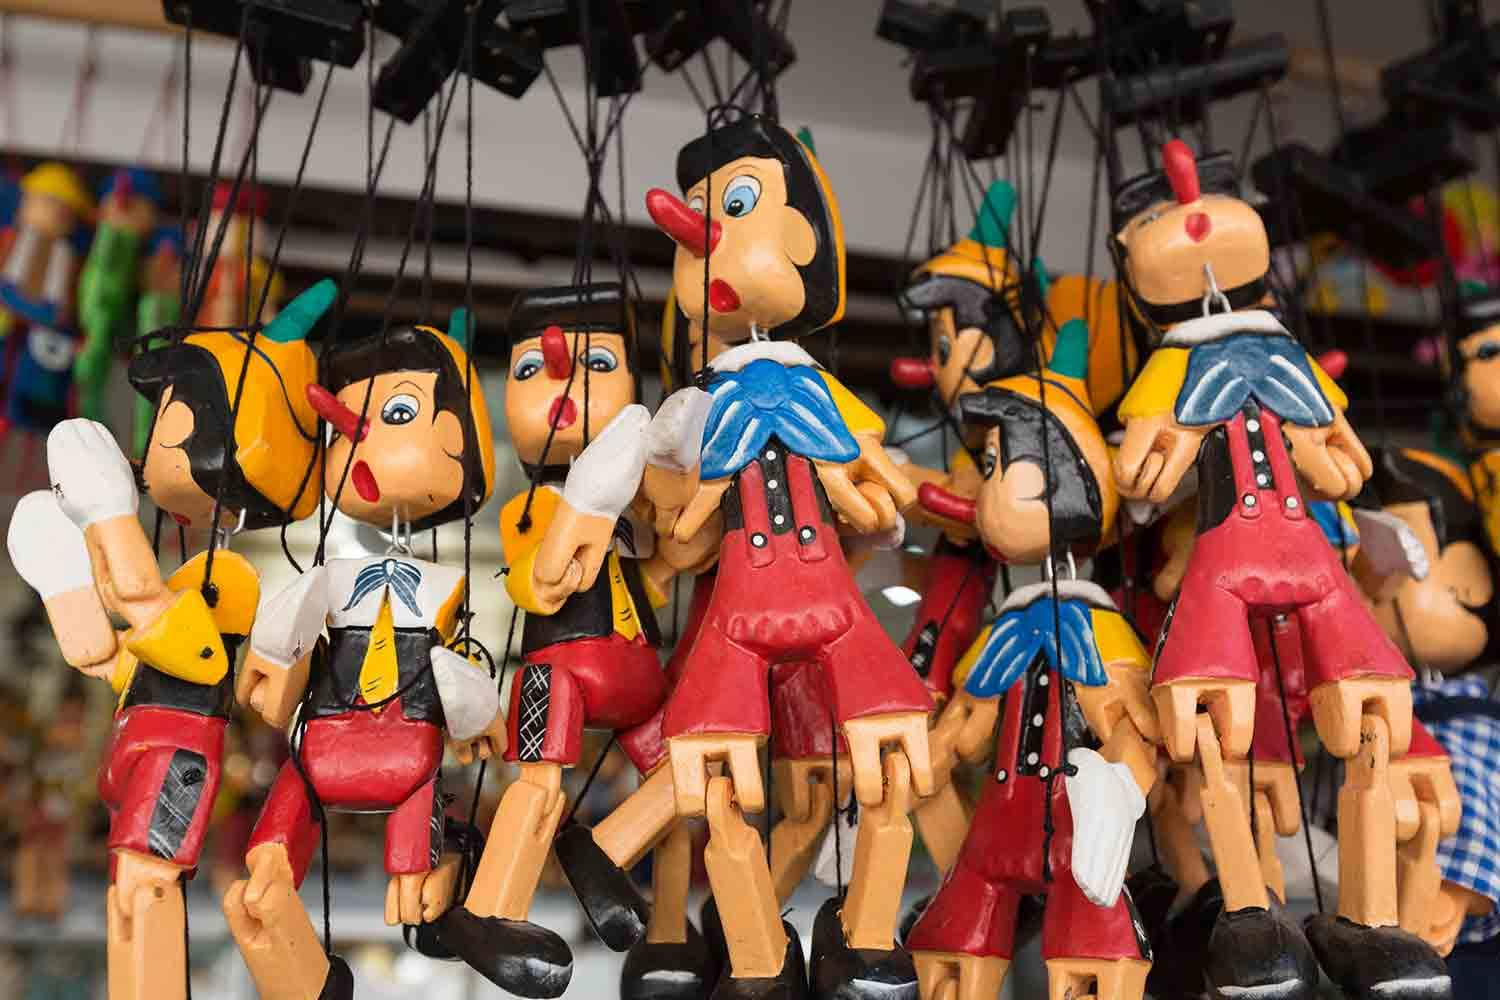 Pinocchio's guide to social media for business